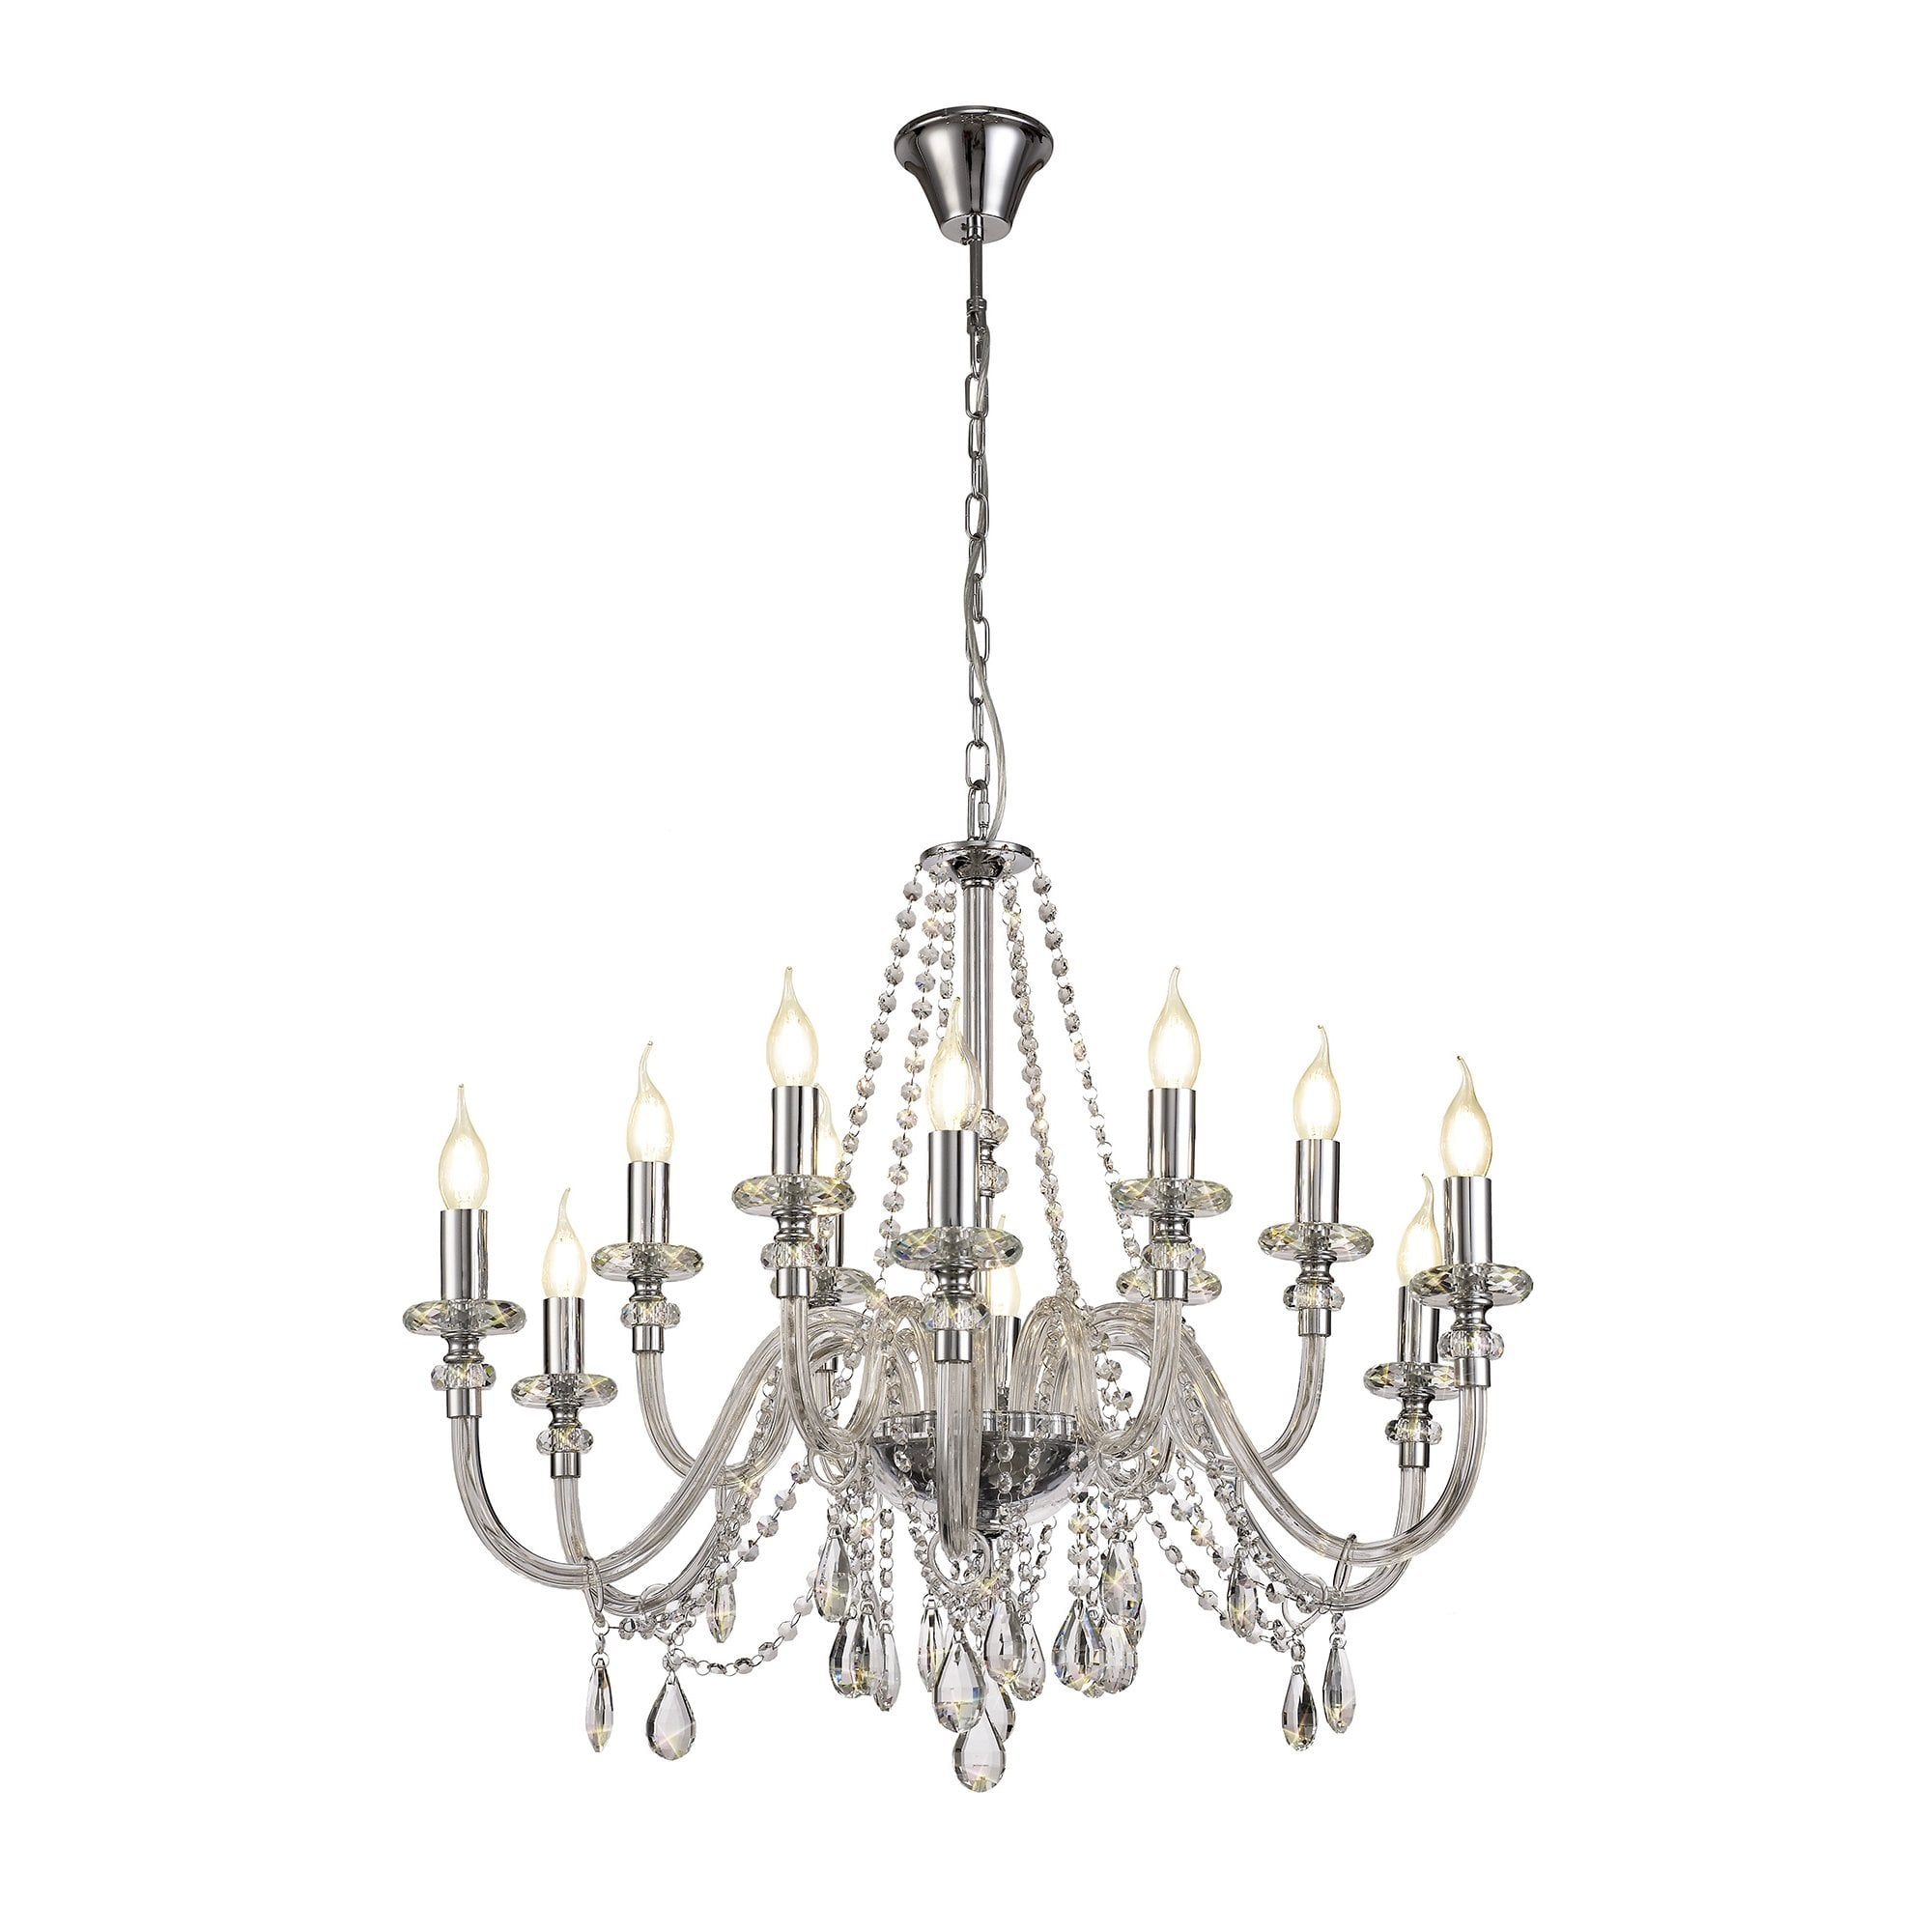 LUCENT Twin Chandelier Style Wall Light Polished Chrome and Real Crystal